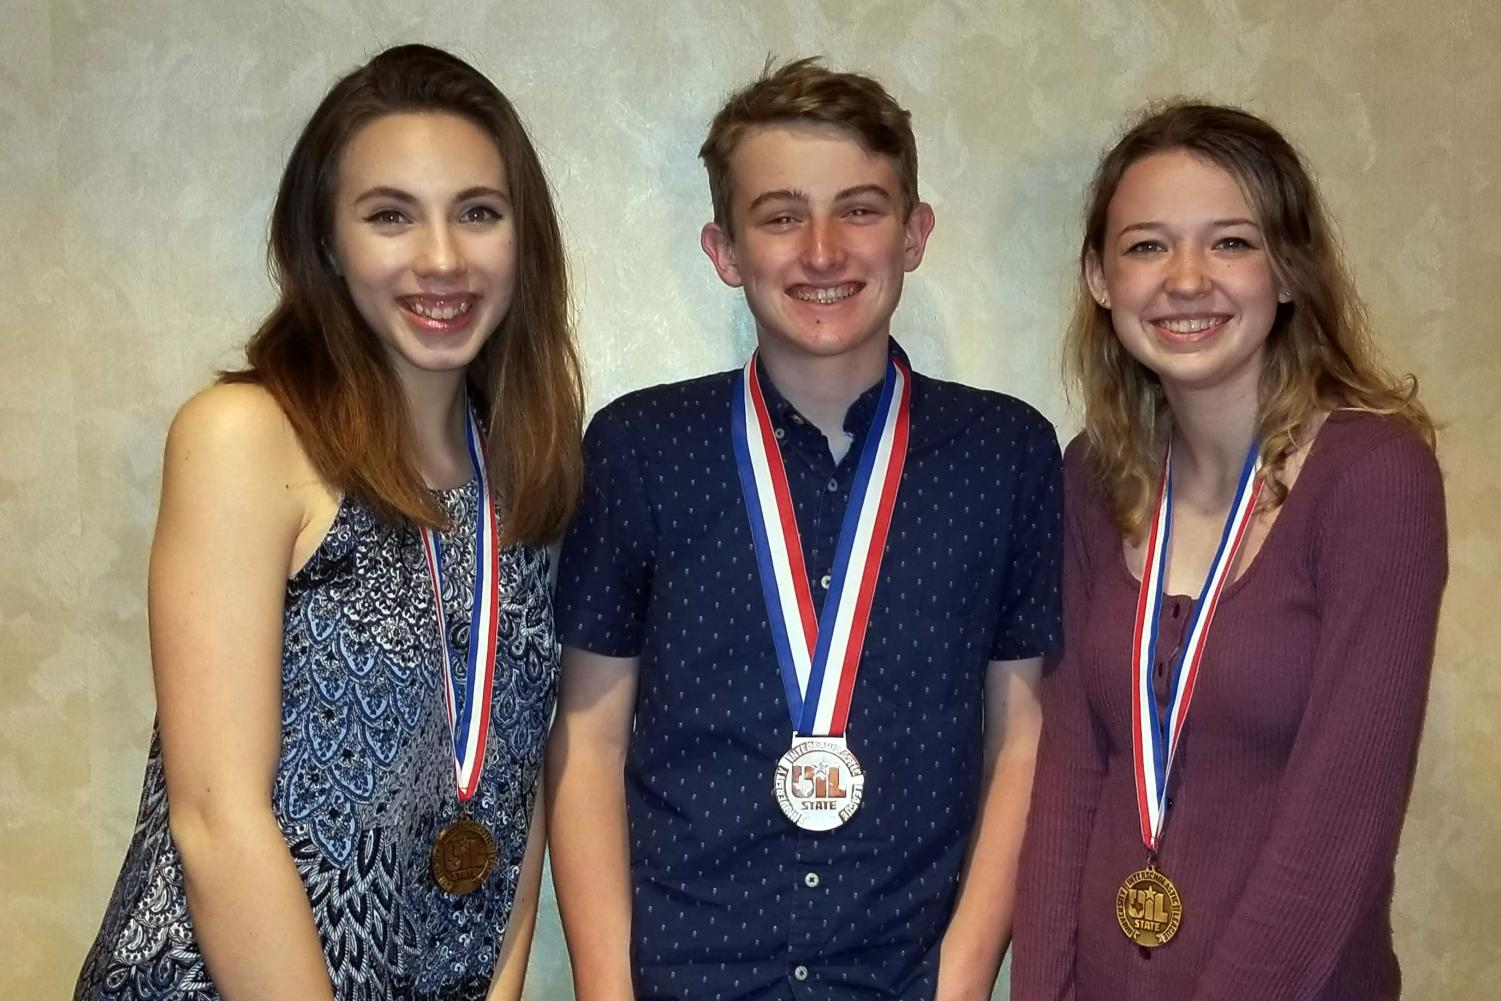 Medalists at the State UIL Academic Meet include Erin Sheffield, Luke Bruce and Claire Meyer.